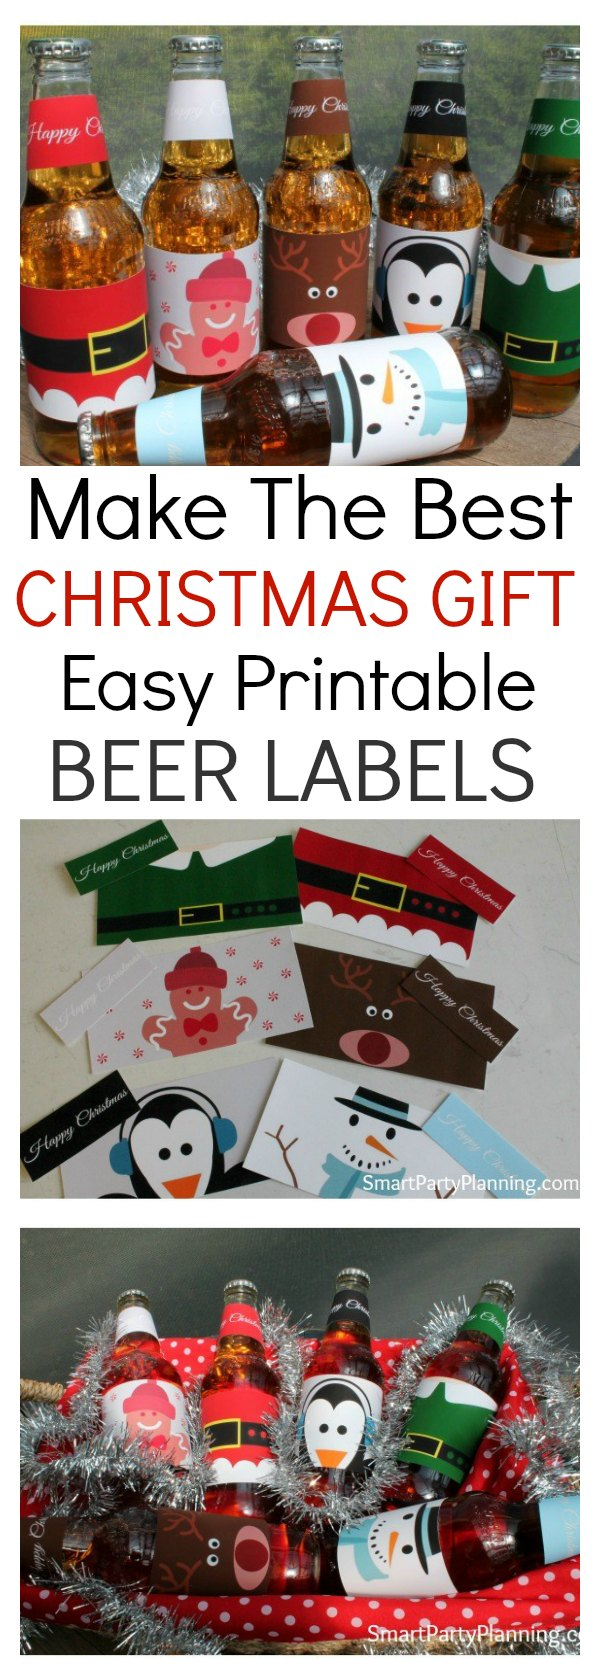 Printable beer labels are the perfect gift idea for your man this Christmas. It is quick and easy to prepare and you know it is going to be something he will love. For a cost effective, easy, different gift idea this definitely ticks all the box's. Alternatively, they would look fantastic at a Christmas party or to enjoy a cool beverage on Christmas day. Either way, these cute Christmas beer labels will be sure to be a hit.